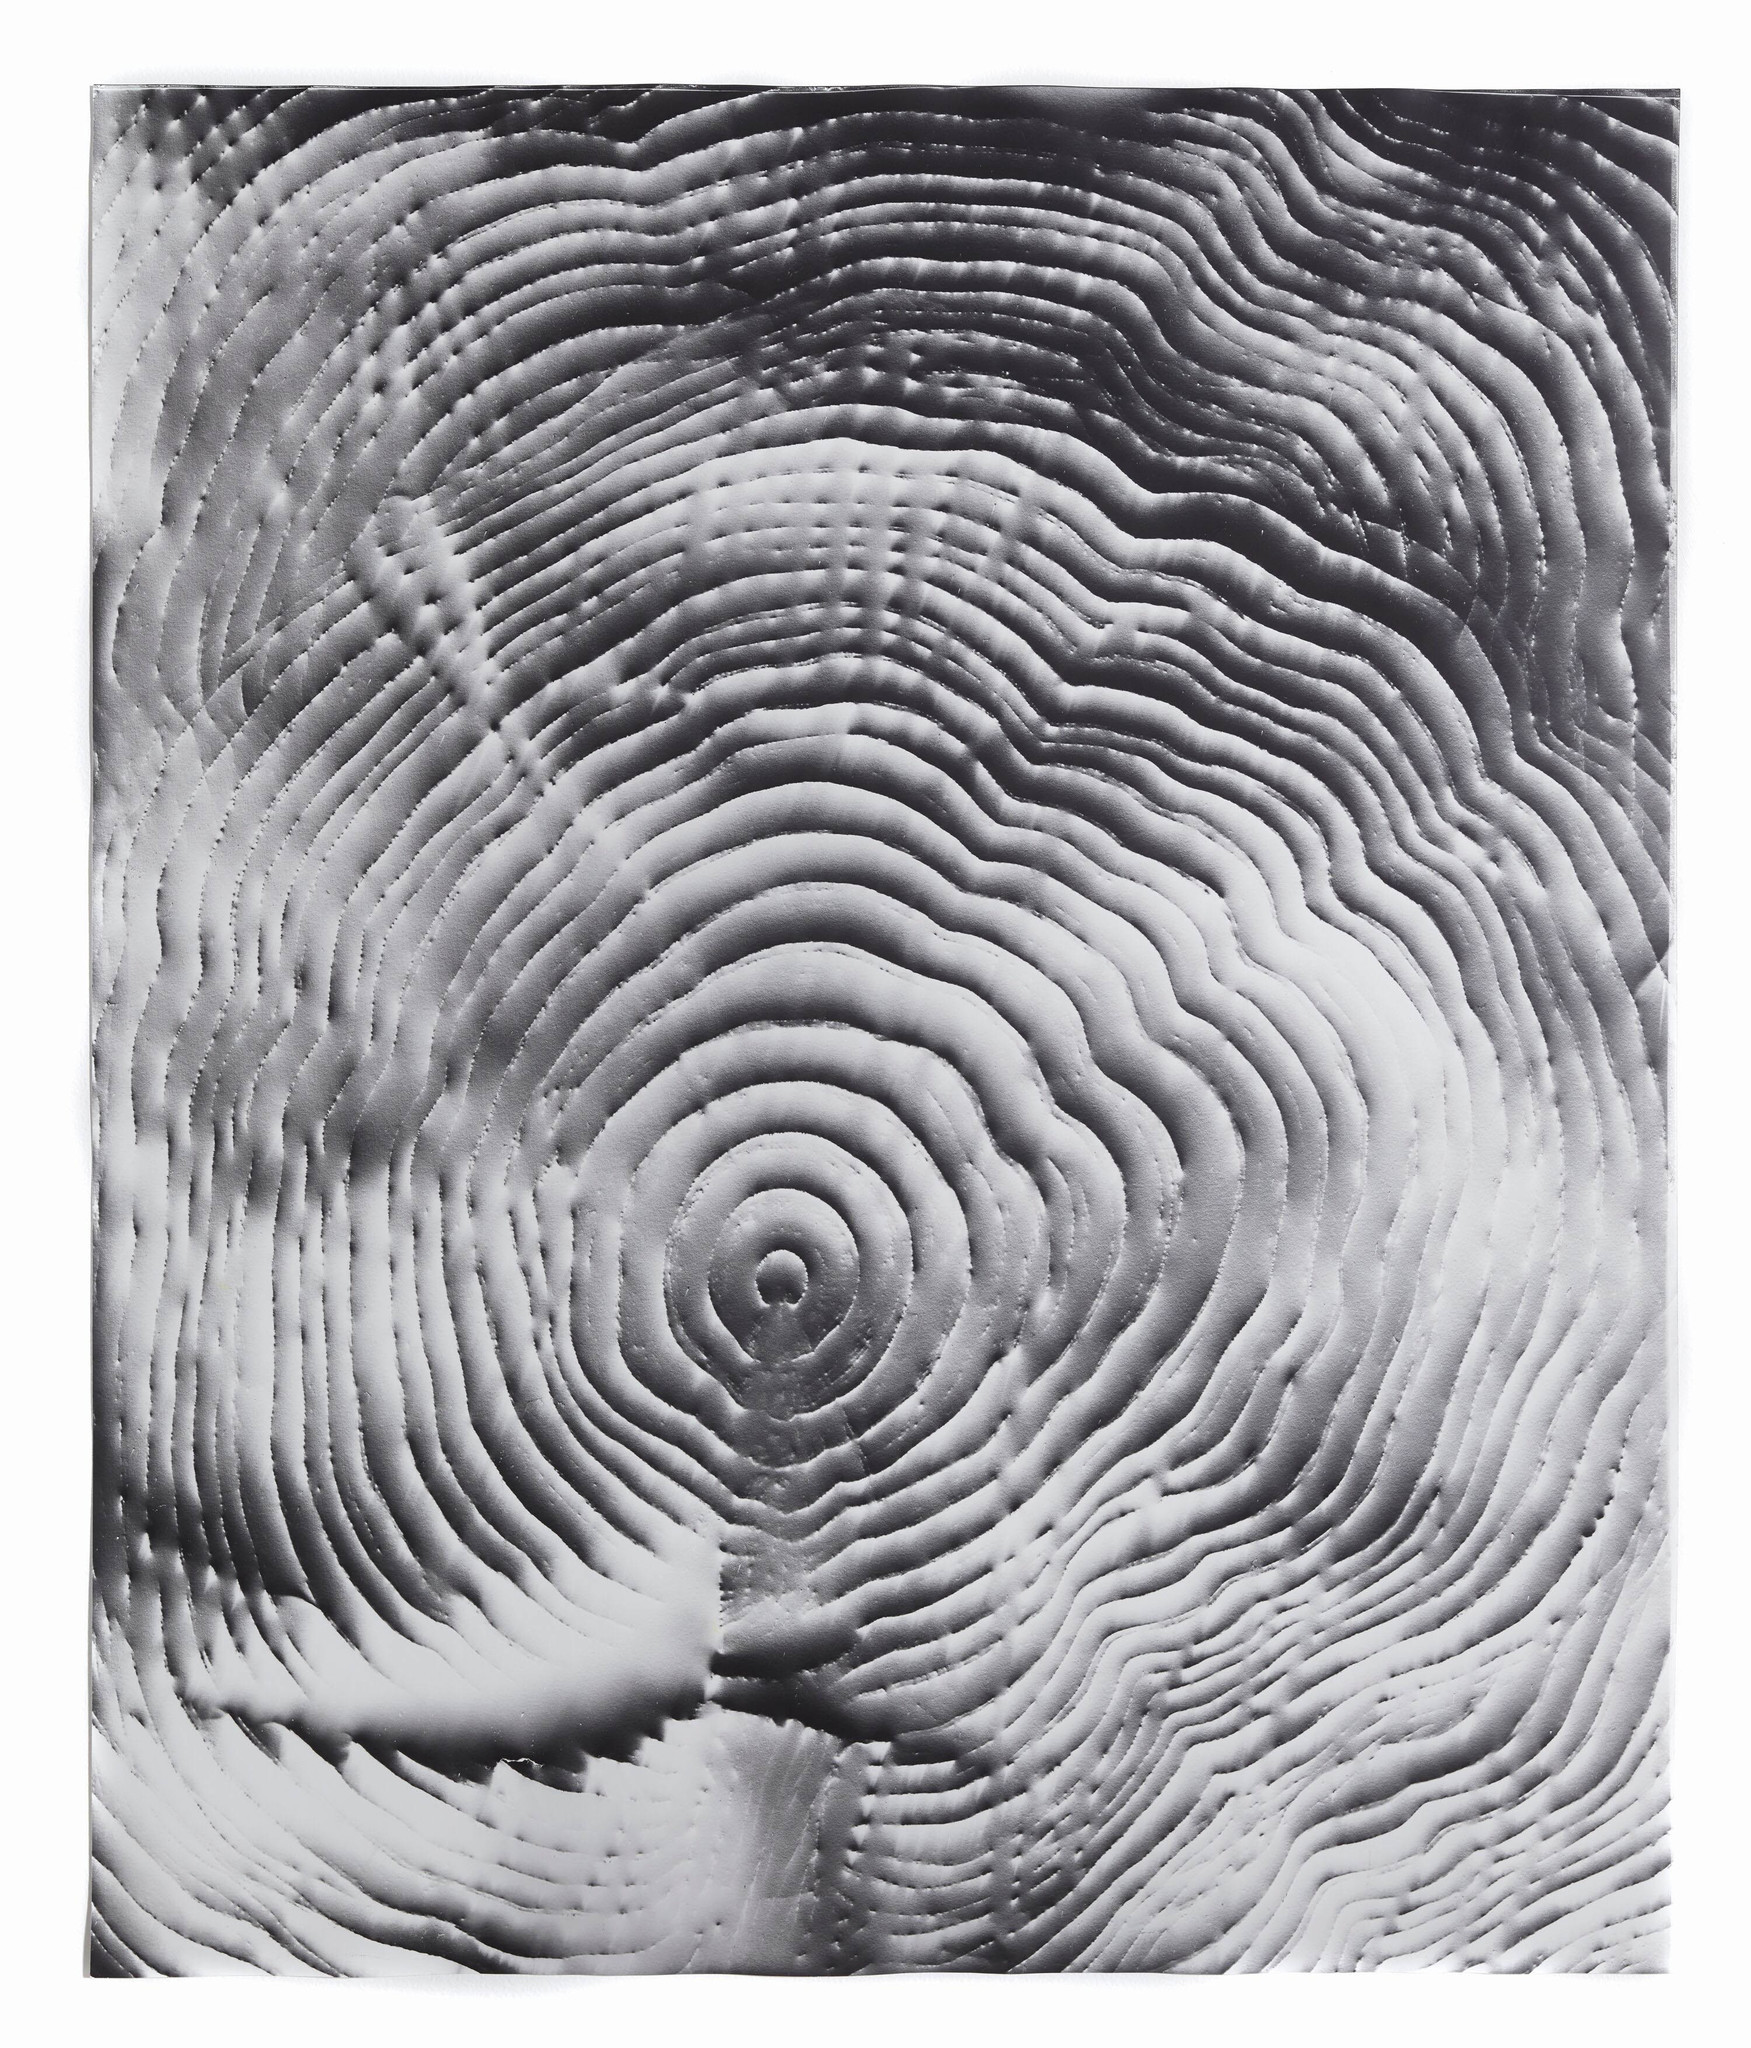 """Automatic Earth #13,"" 2016, photographic rubbing, unique gelatin silver photogram."